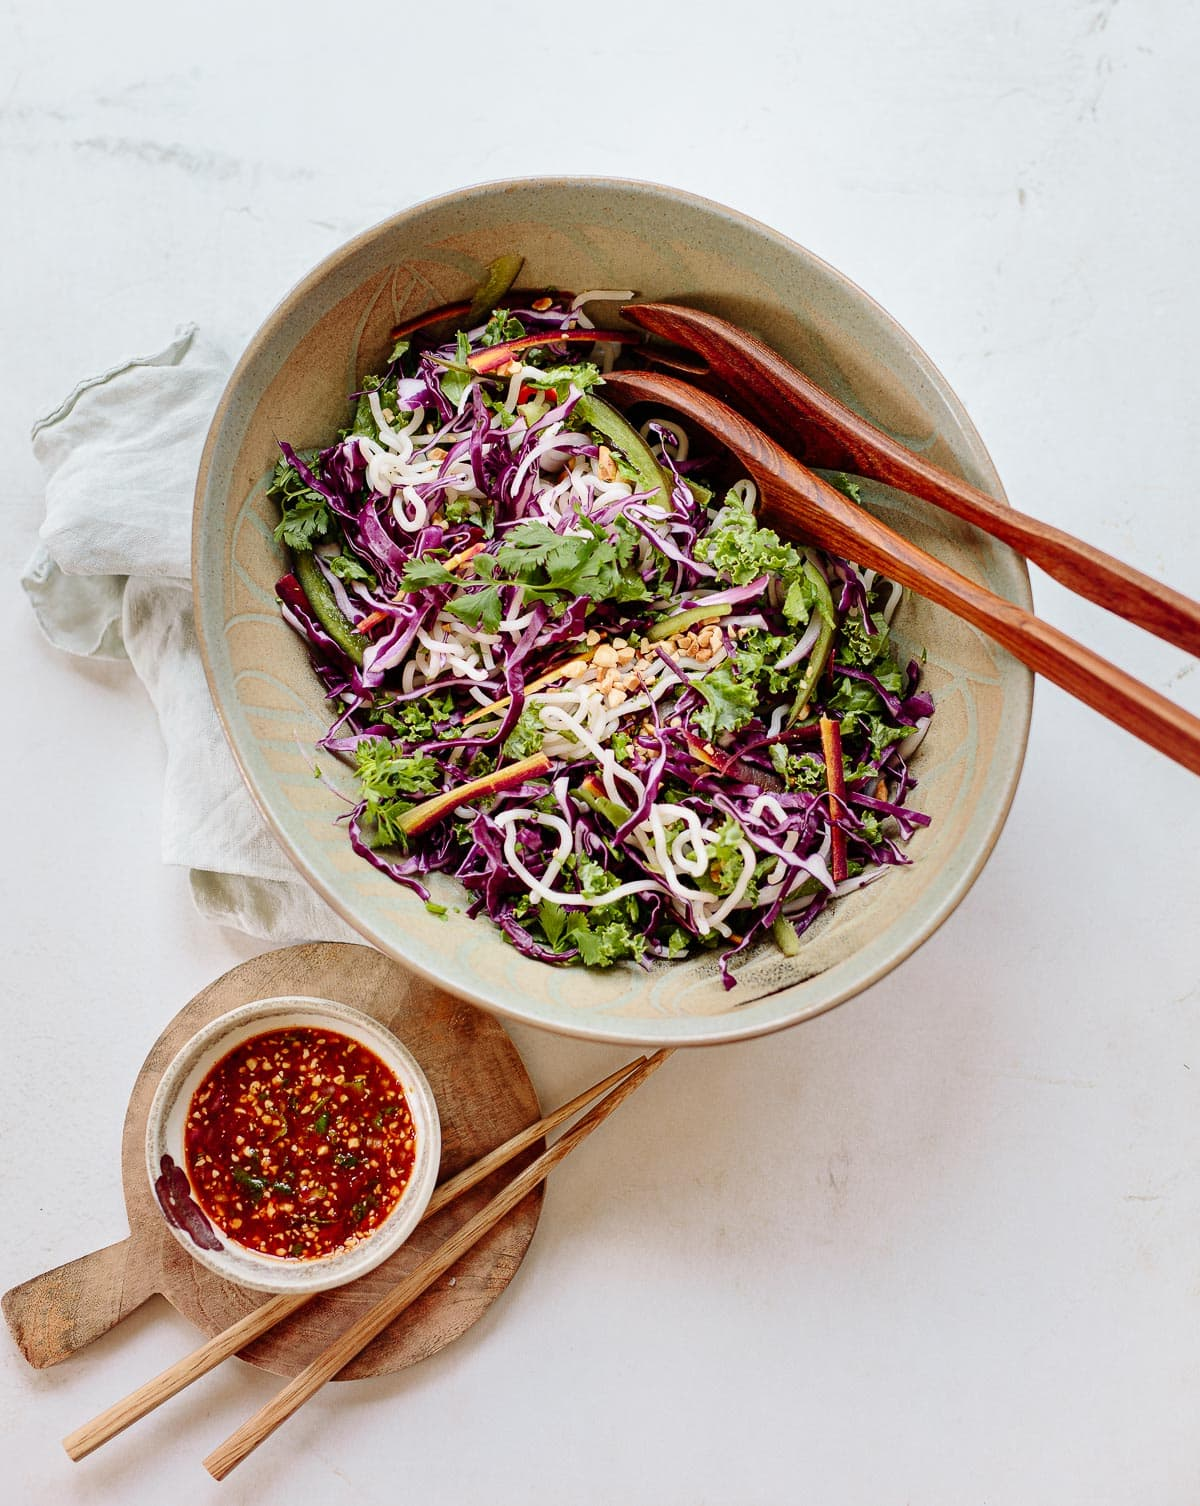 A gray bowl with chopsticks on the side, full of red cabbage and green kale ribbons, bell peppers and Thai noodle slaw with peanuts on top.